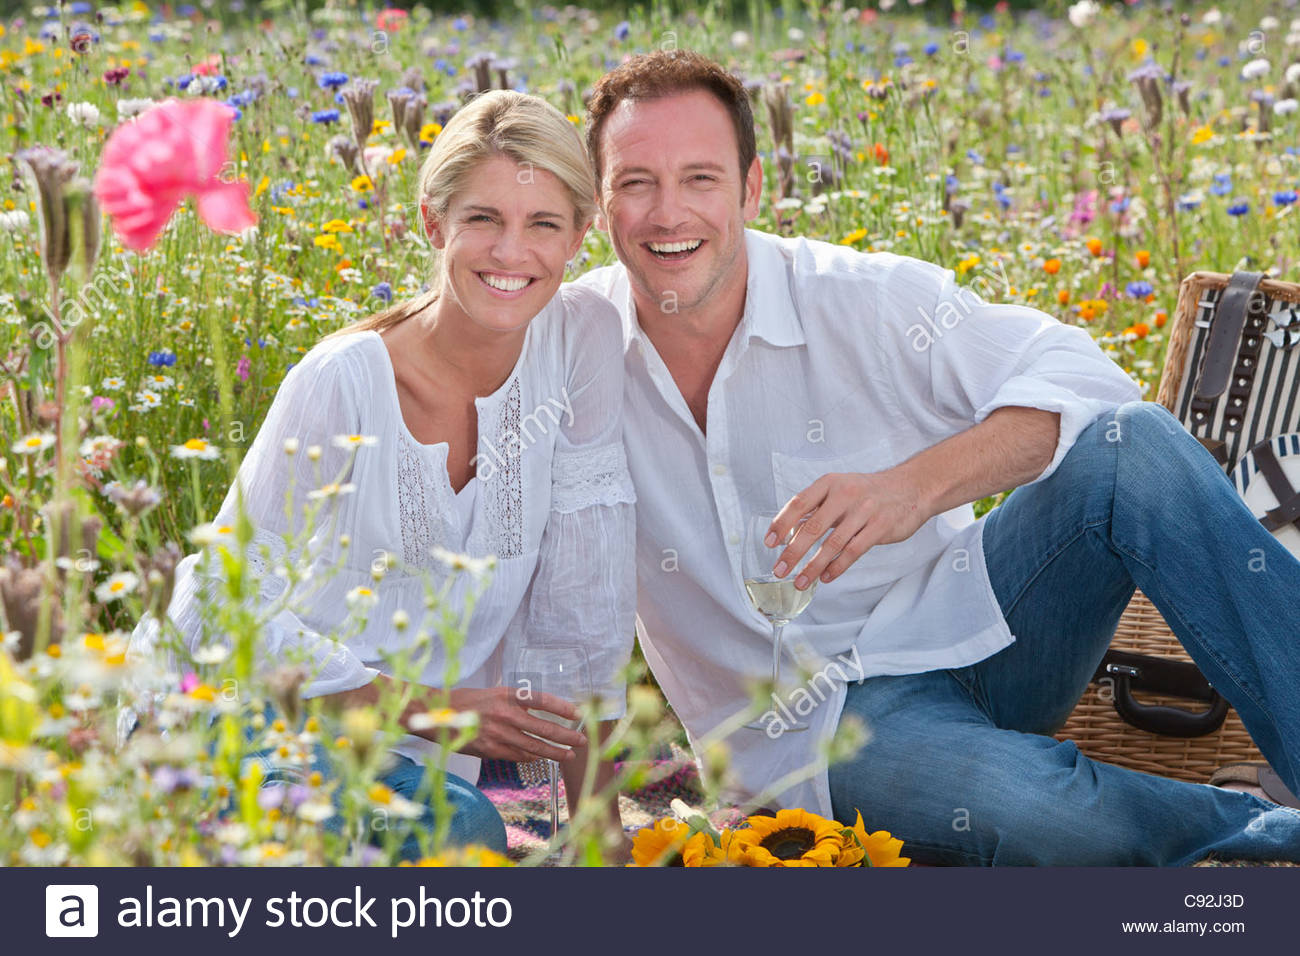 Portrait of smiling couple drinking white wine and picnicking in sunny wildflower field - Stock Image